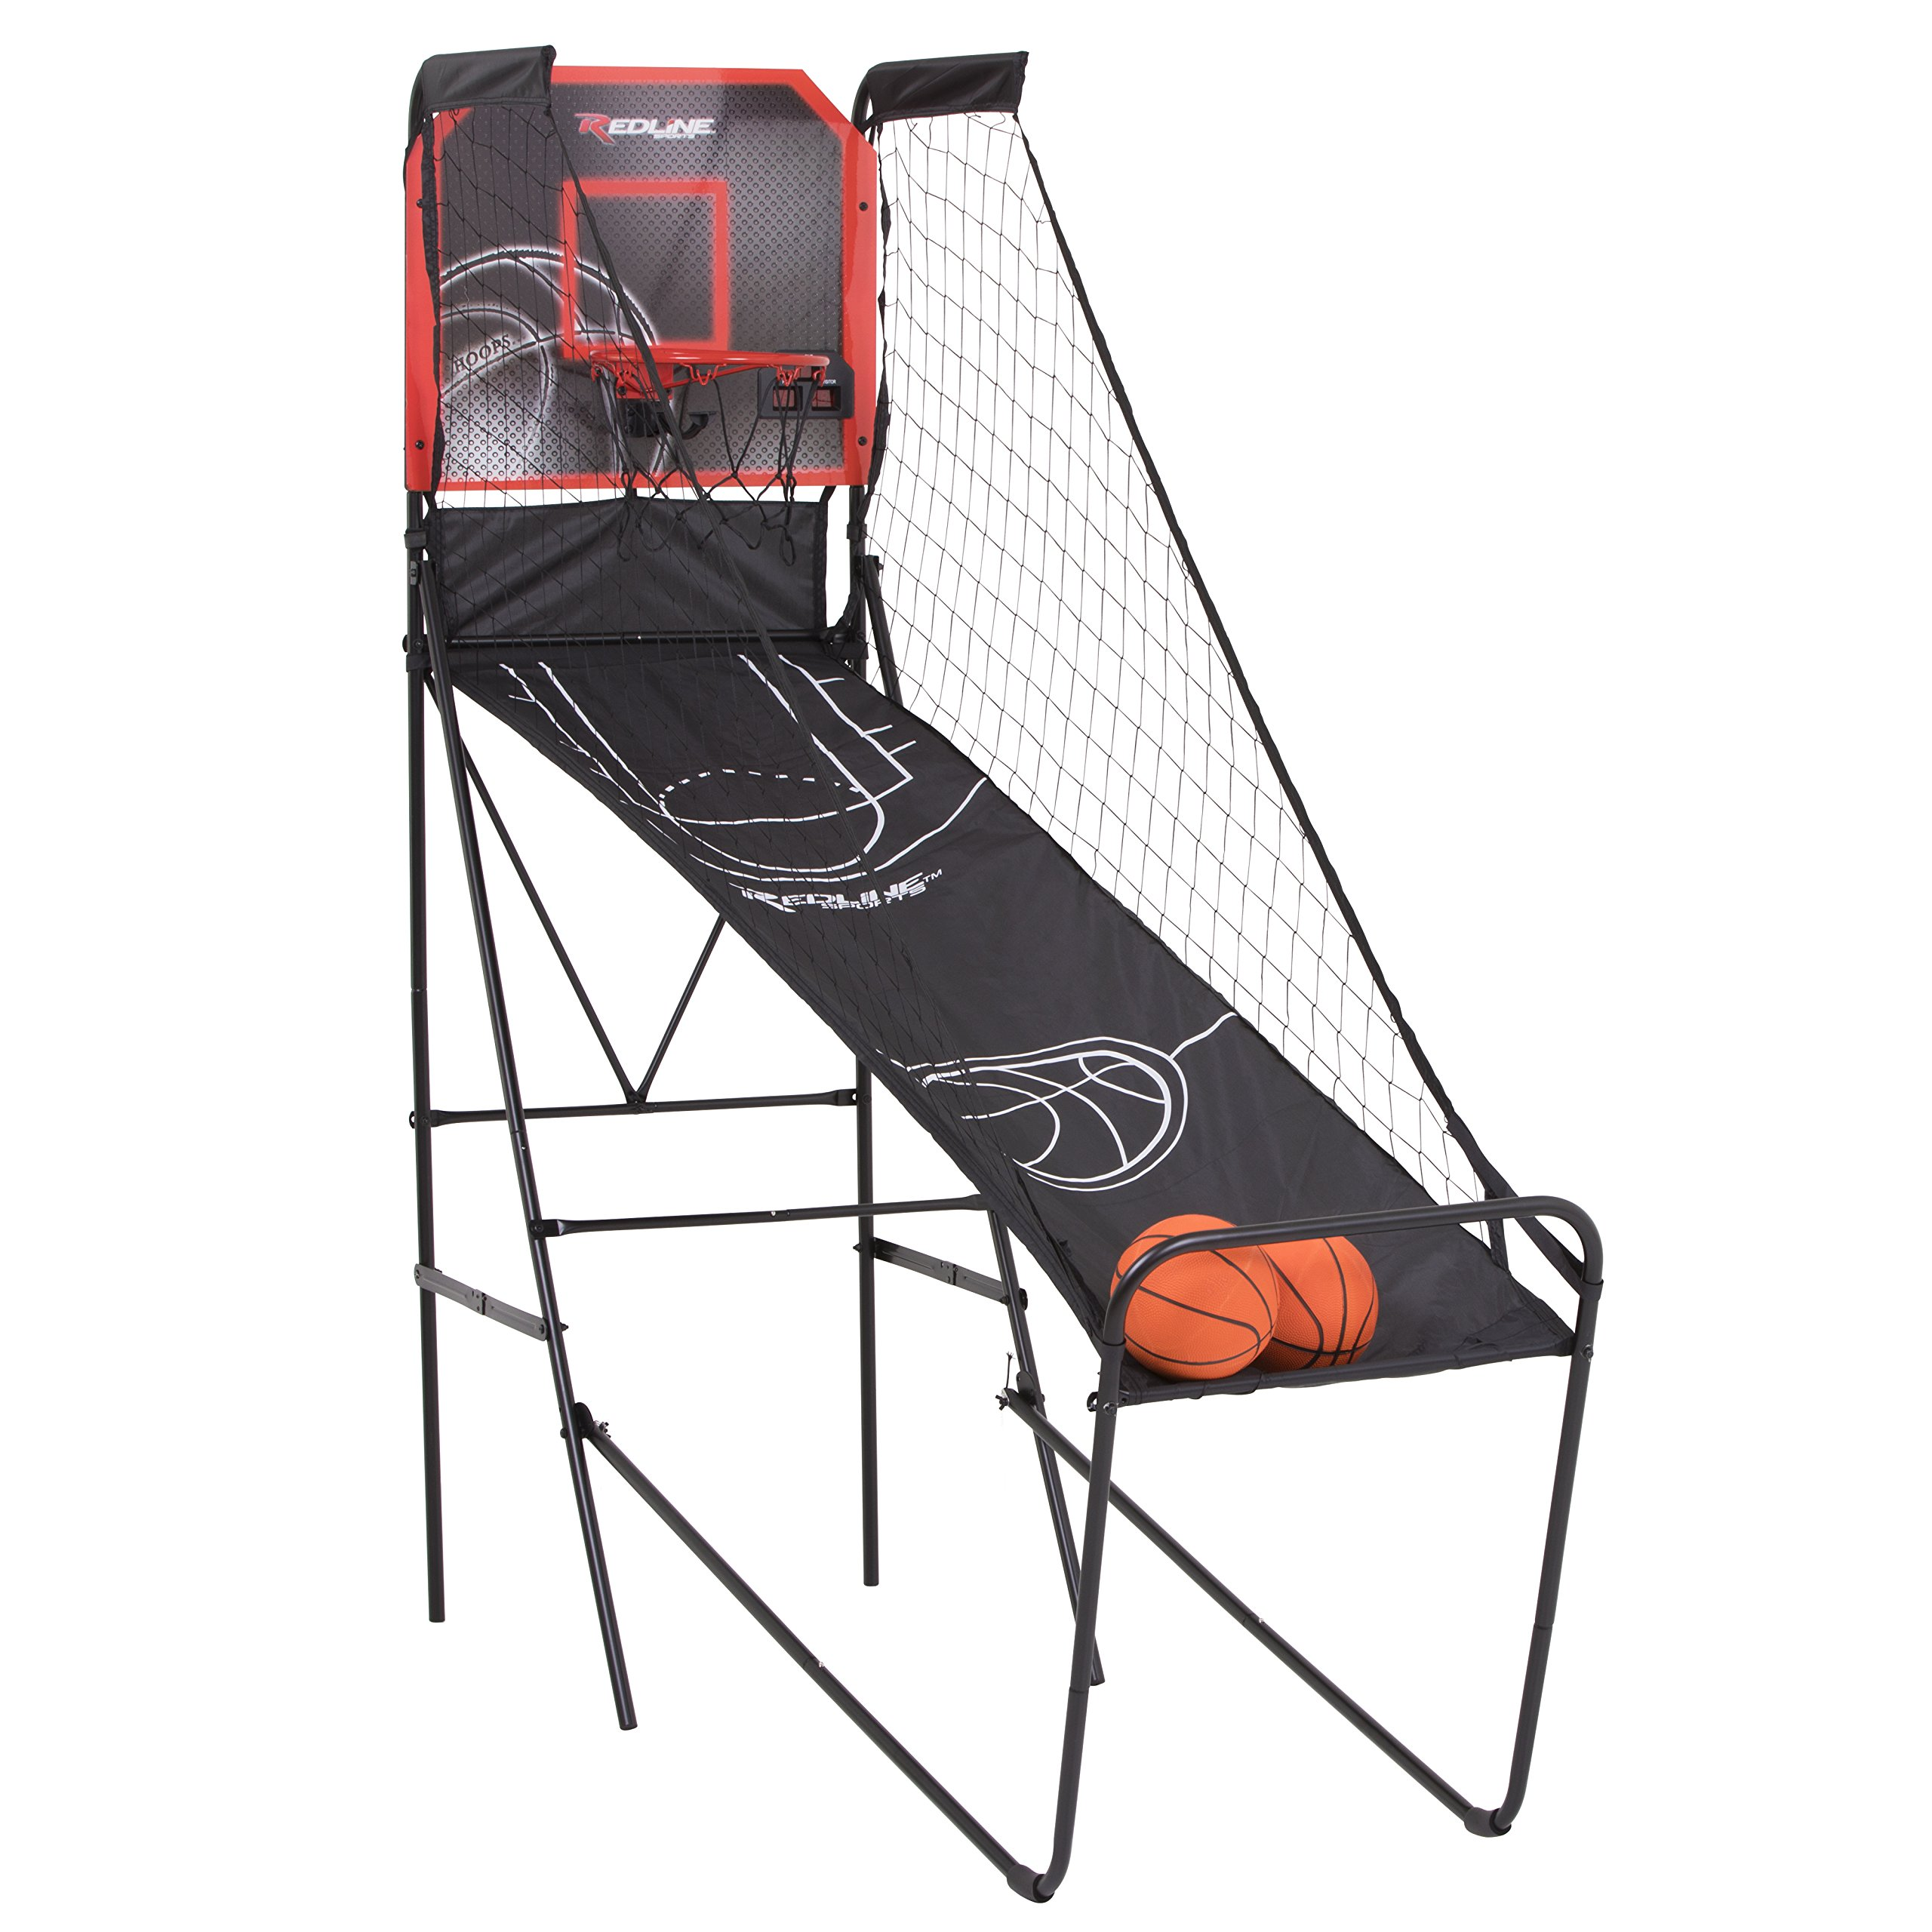 Redline Alley-Oop Single Basketball Shootout with Quick Connect Easy-to-Assemble Frame and Compact Fold-up Design for Easy Storage by Redline